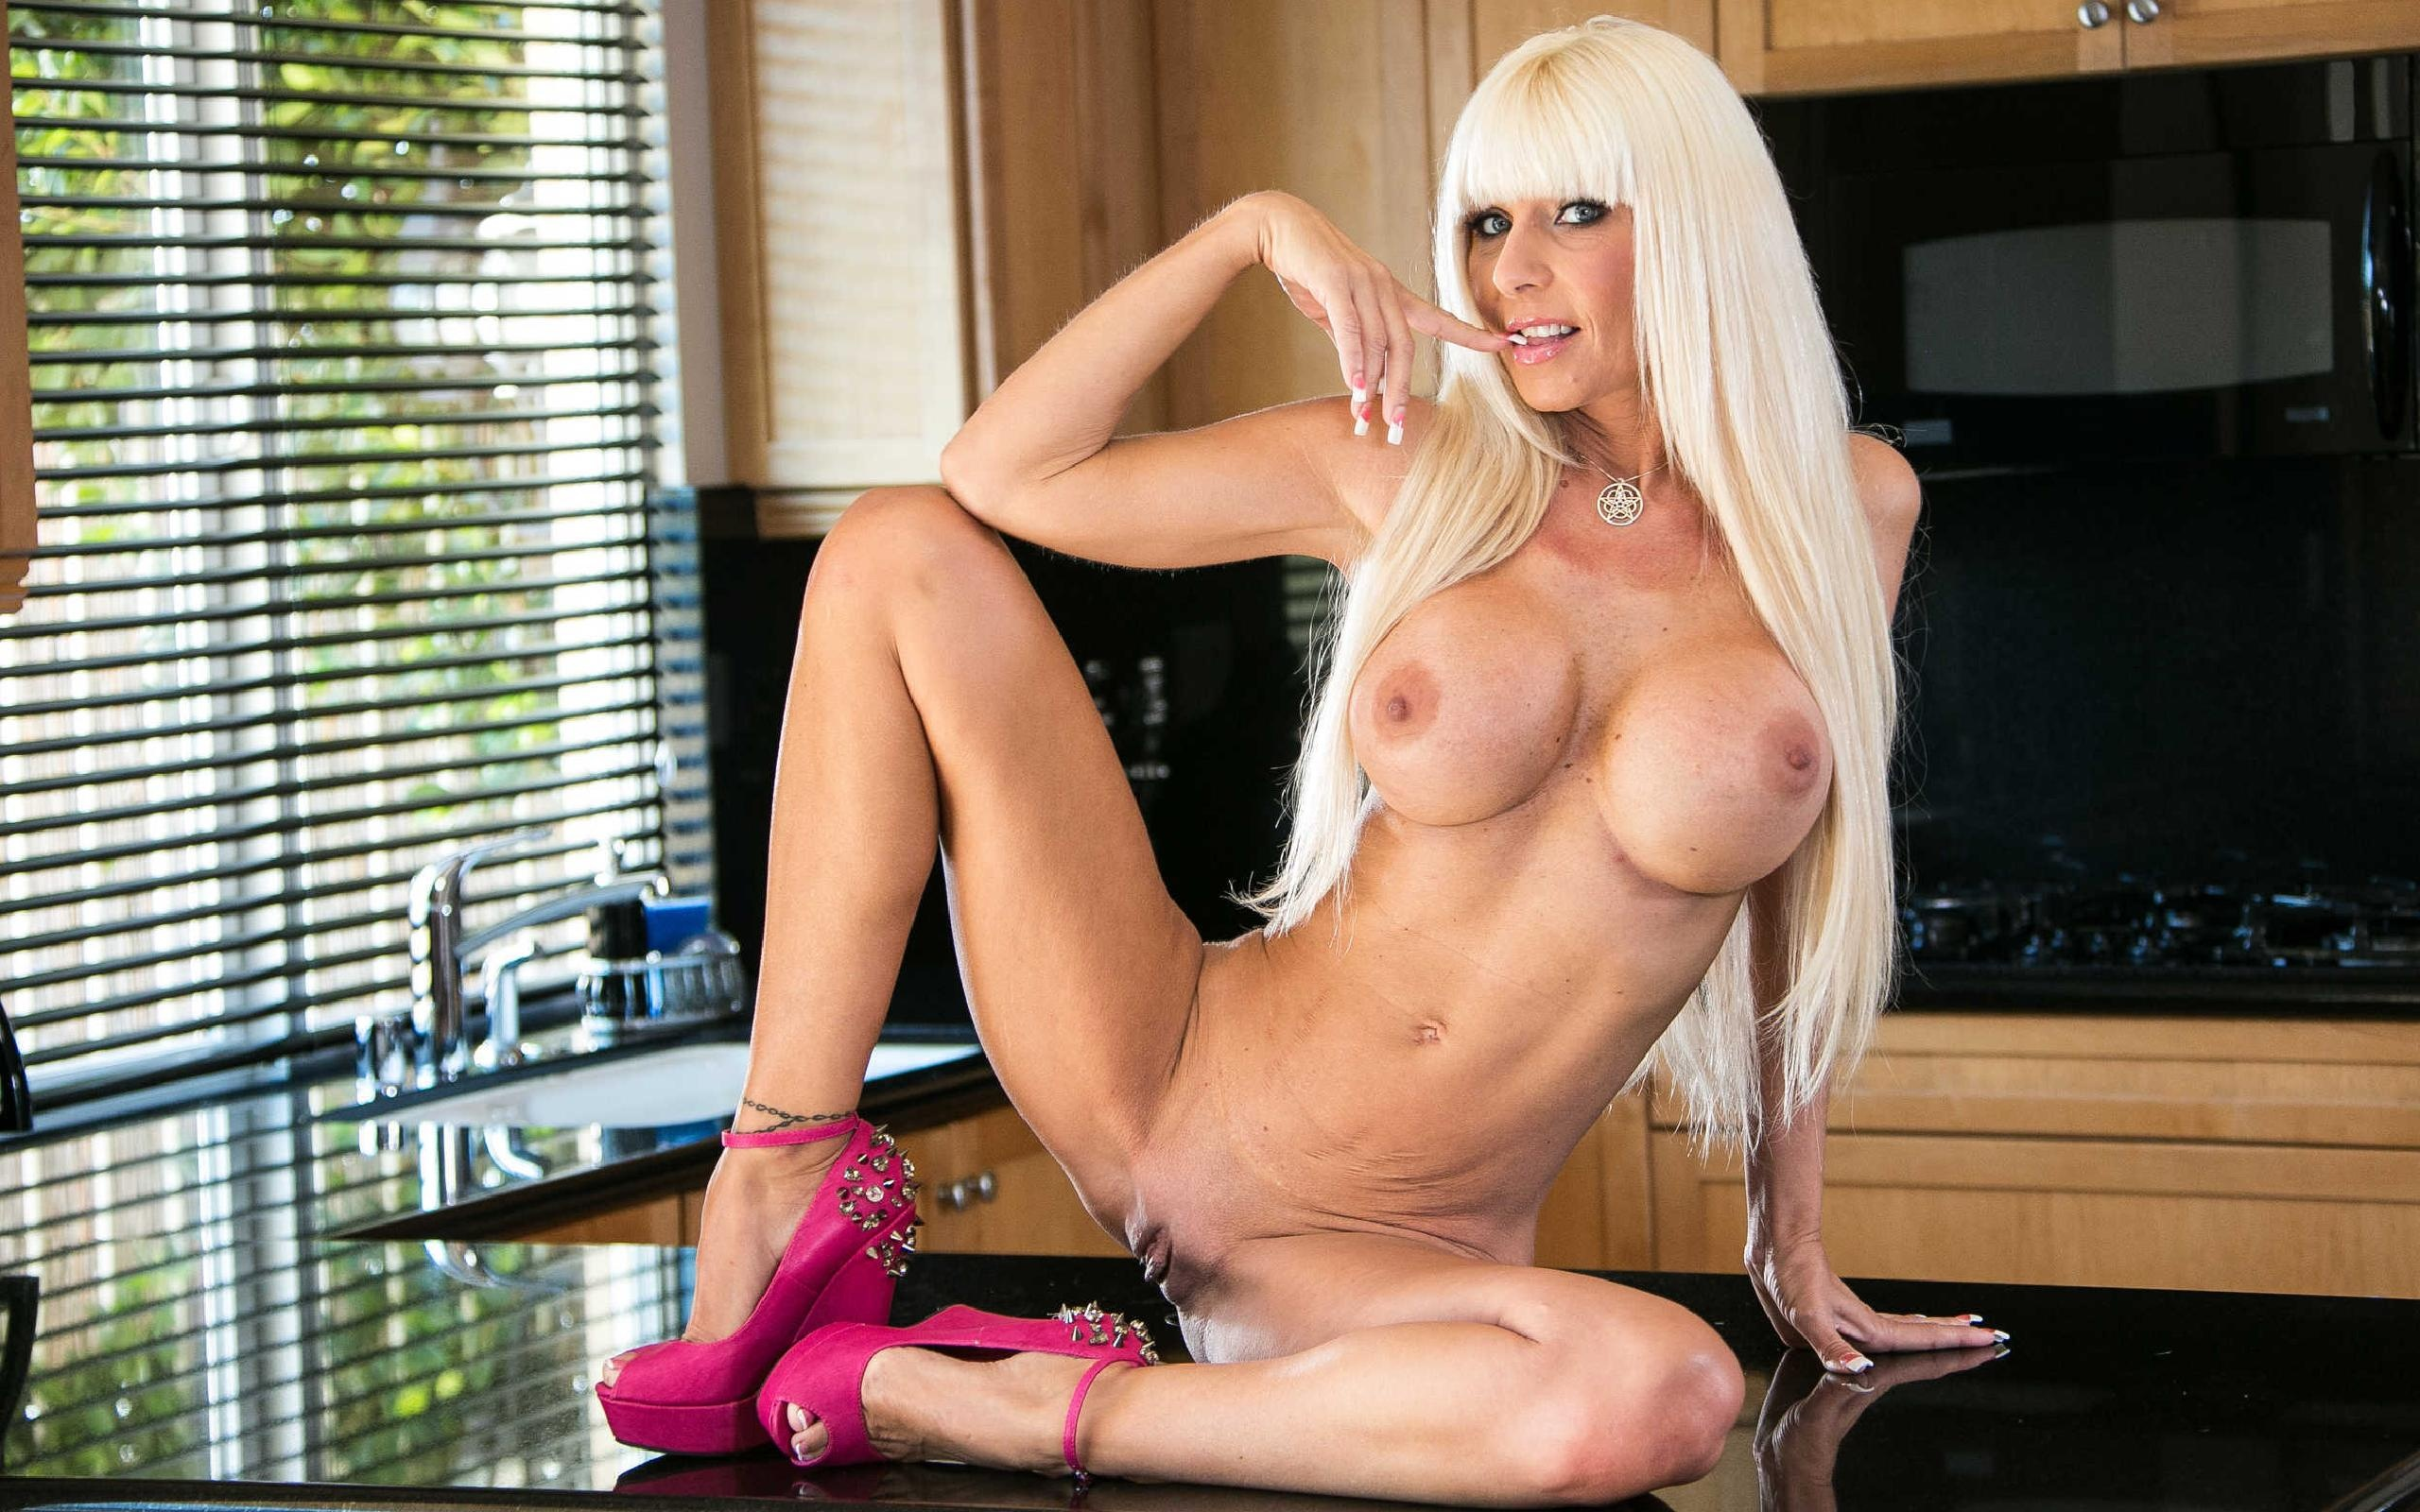 Wallpaper Kasey Storm, Blonde, Milf, Long Hair, Sitting -2551